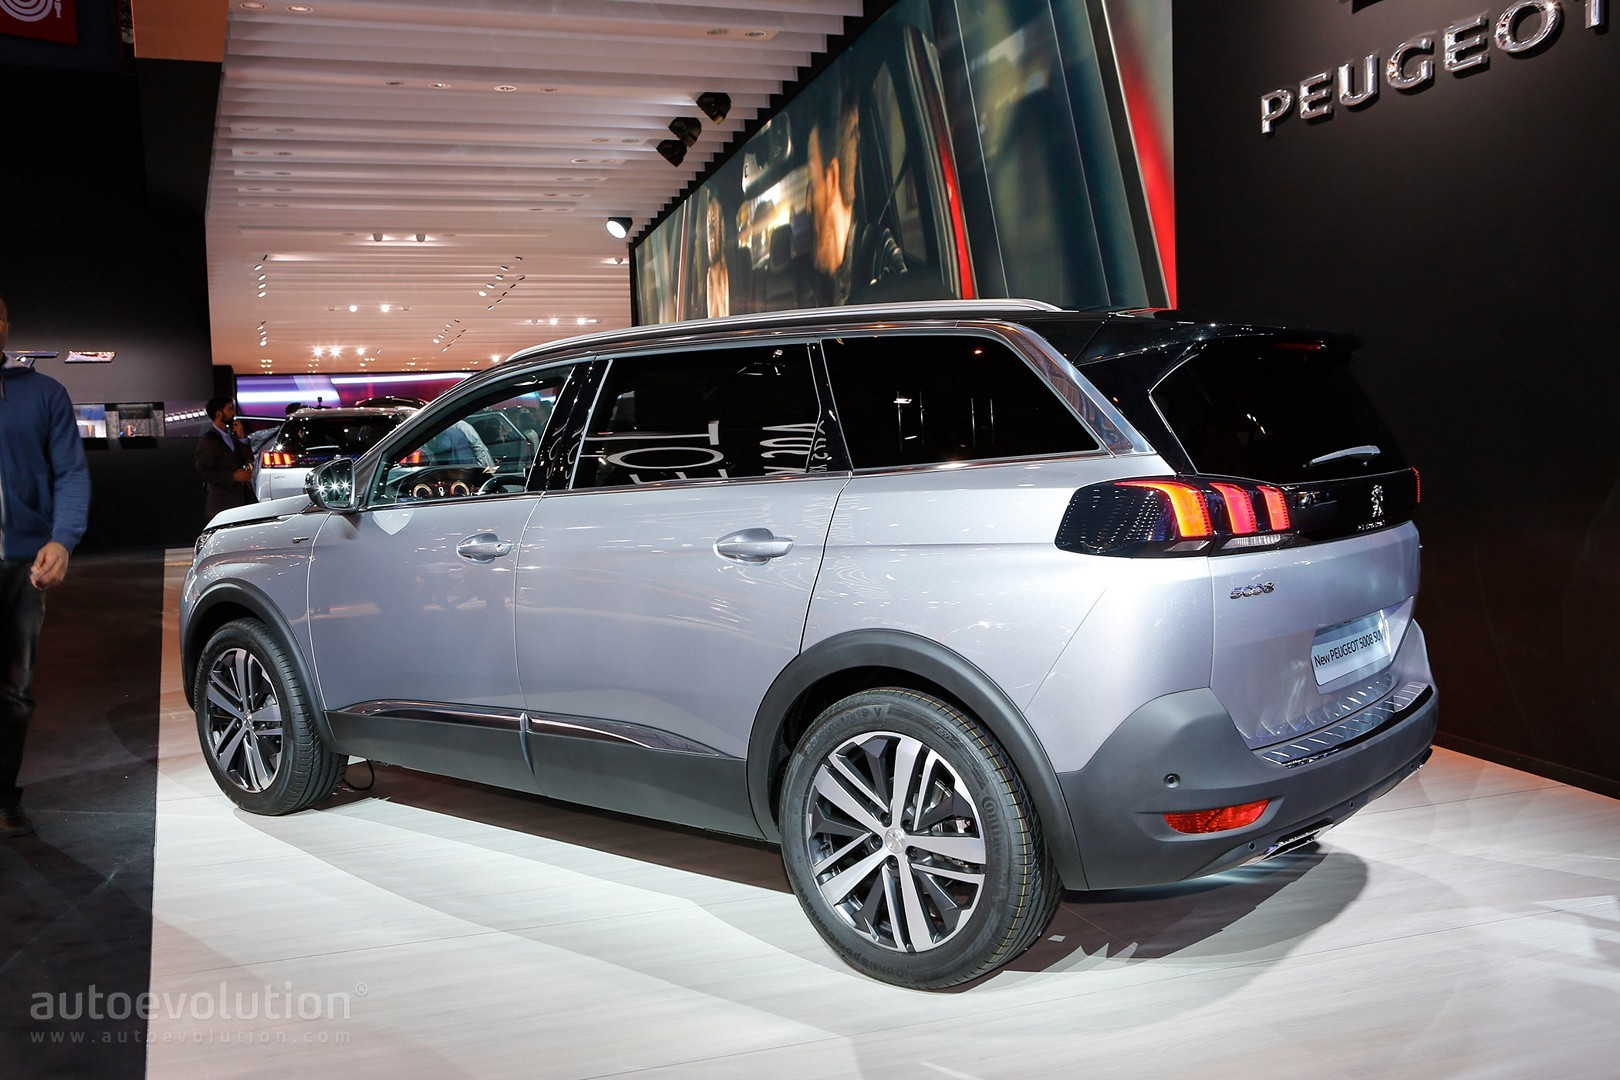 All-New Peugeot 5008 Is a 7-Seater Crossover in Paris - autoevolution